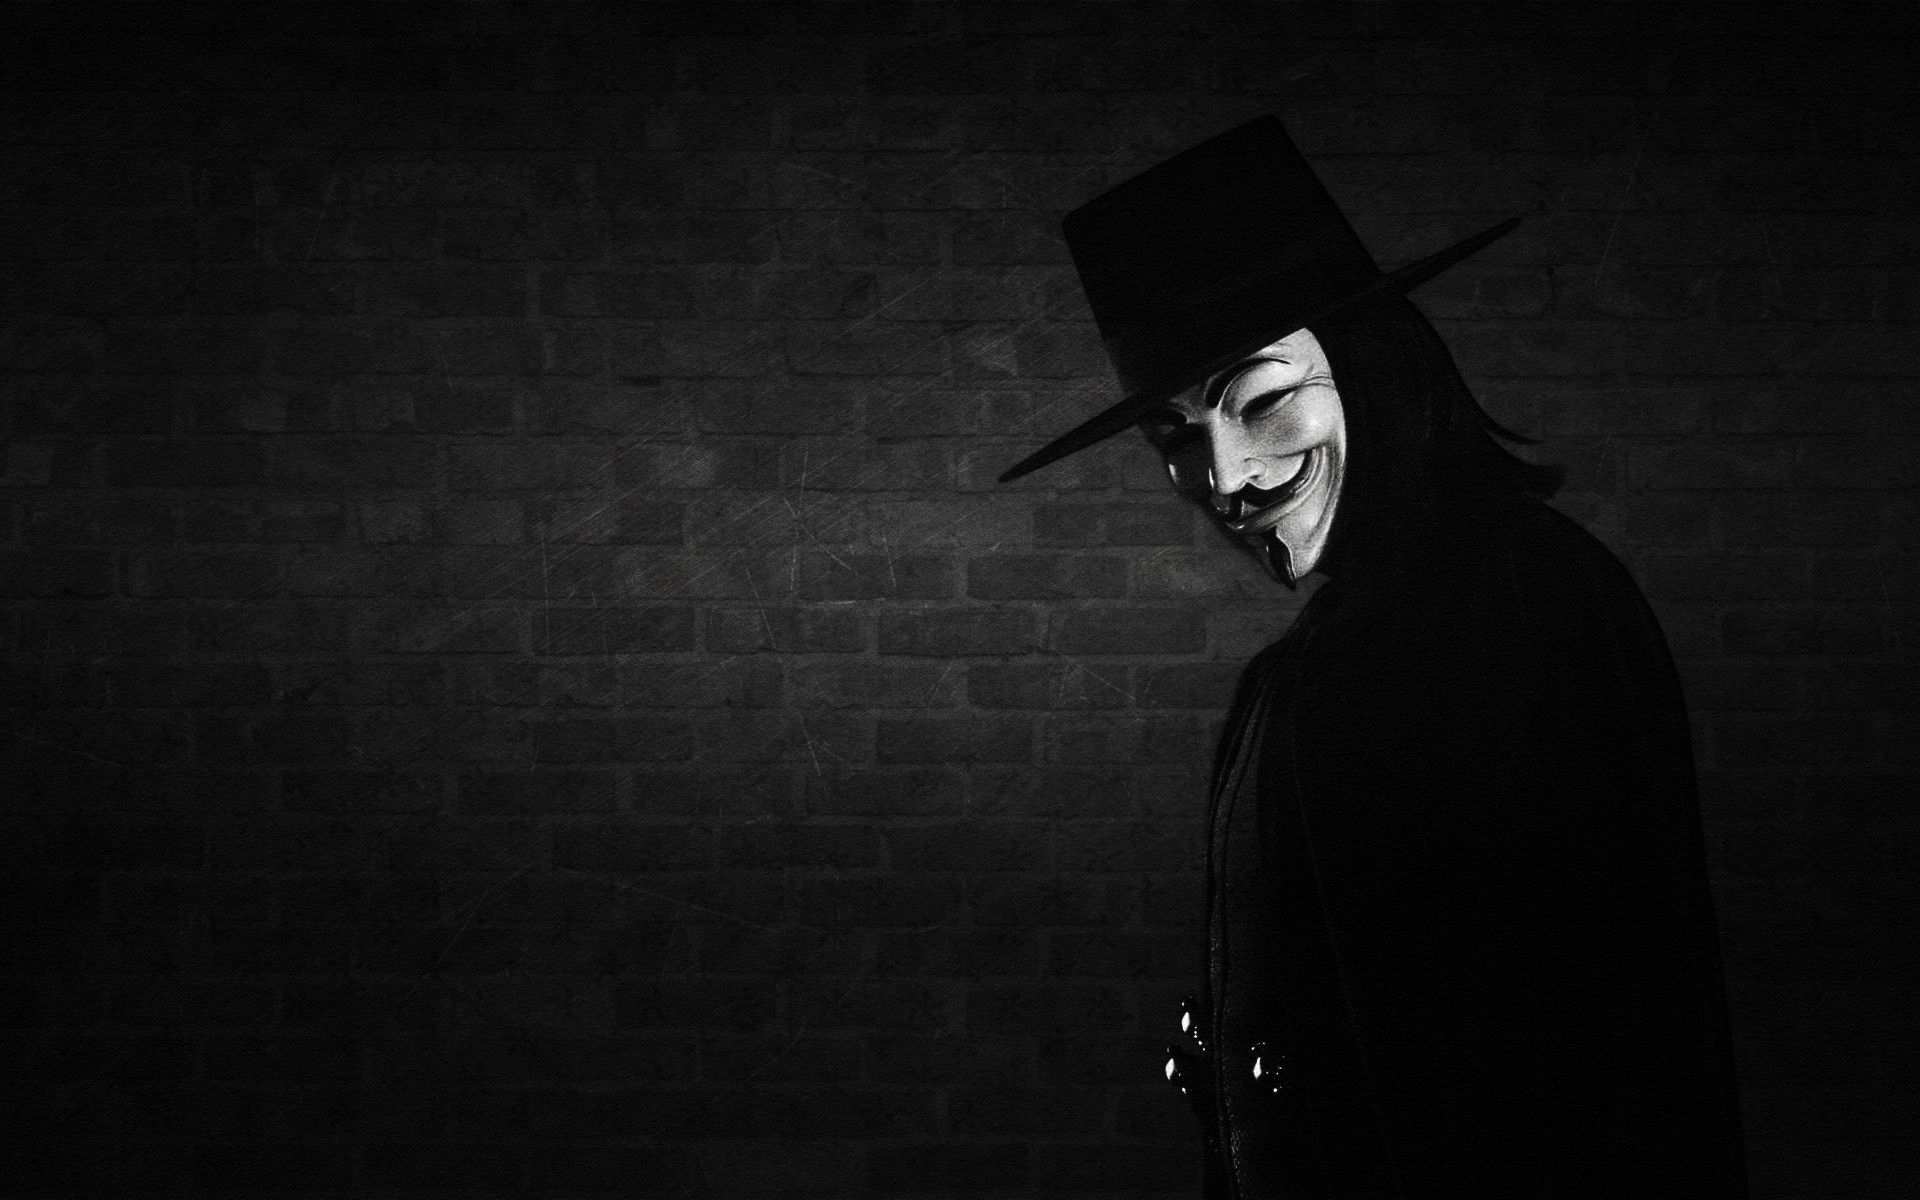 v for vendetta wallpapers - wallpaper cave | all wallpapers